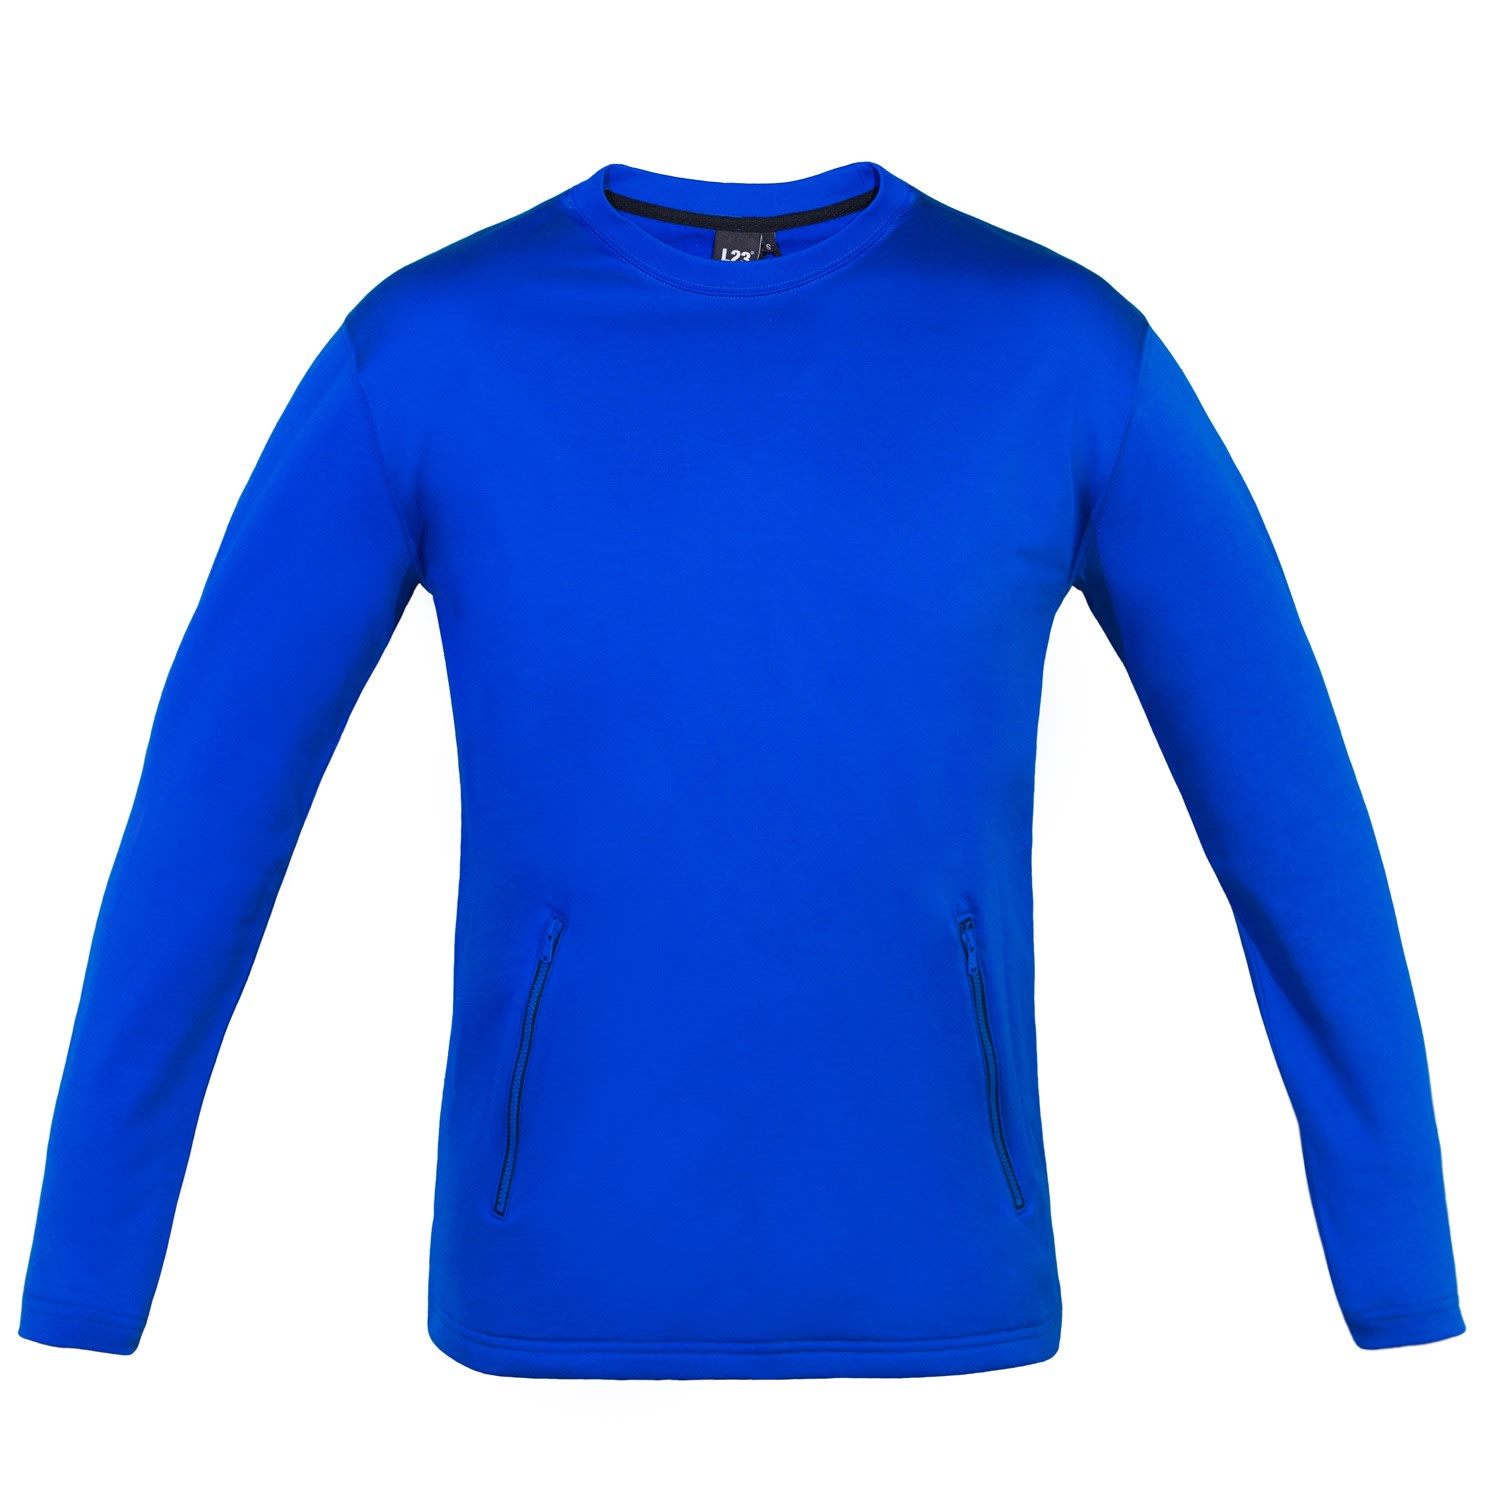 L23 - Cotton Jersey Long Sleeve T-Shirt With 2 Pocket Zippers